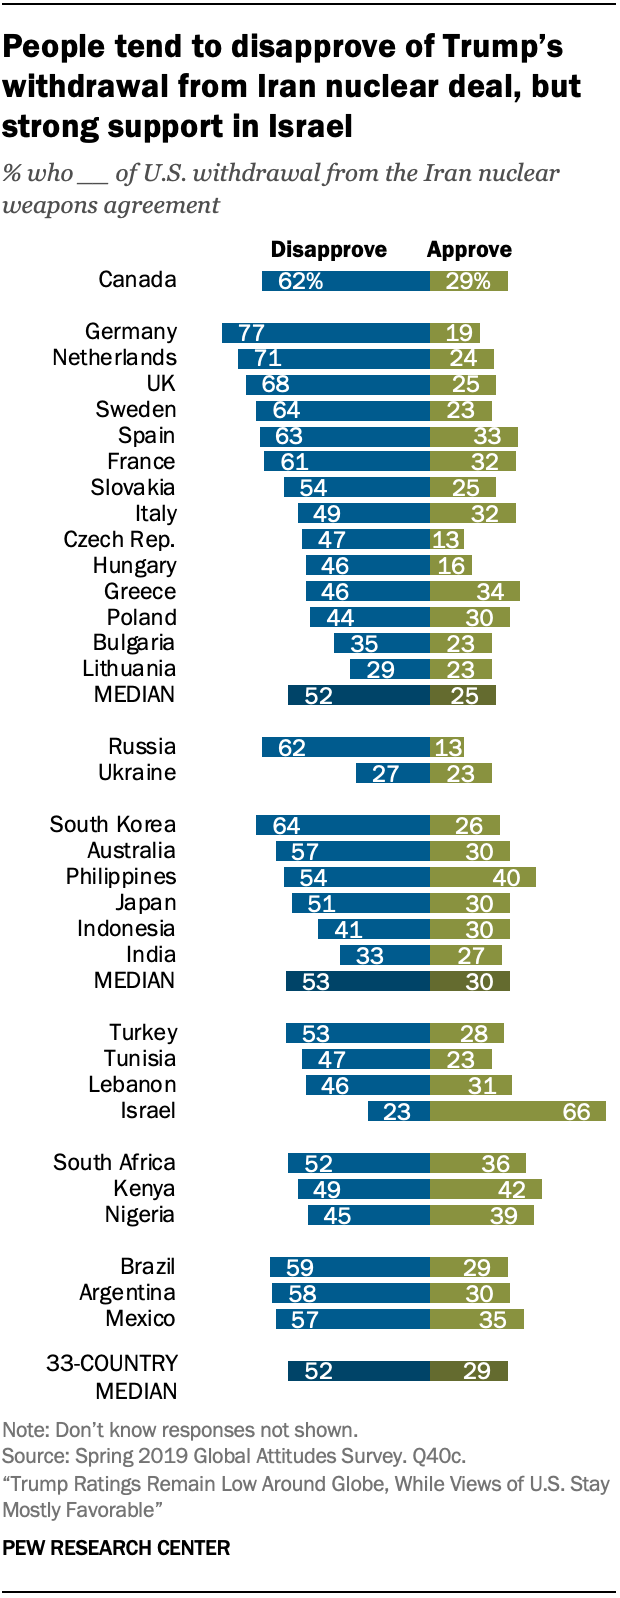 People tend to disapprove of Trump's withdrawal from Iran nuclear deal, but strong support in Israel